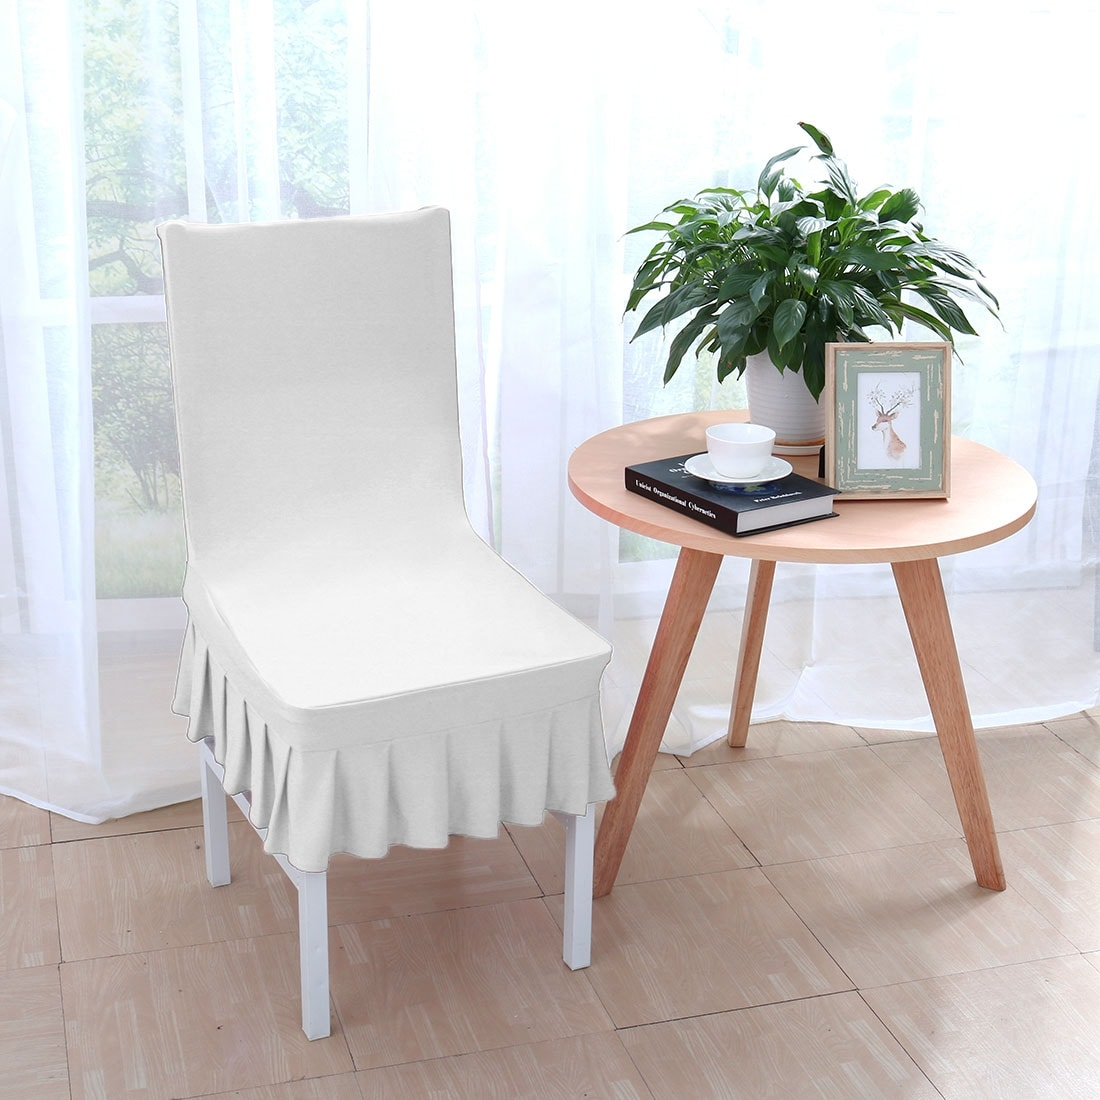 chair covers dining room best big and tall office chairs 2018 shop christmas stretchy thicken plush short seat protector slipcover